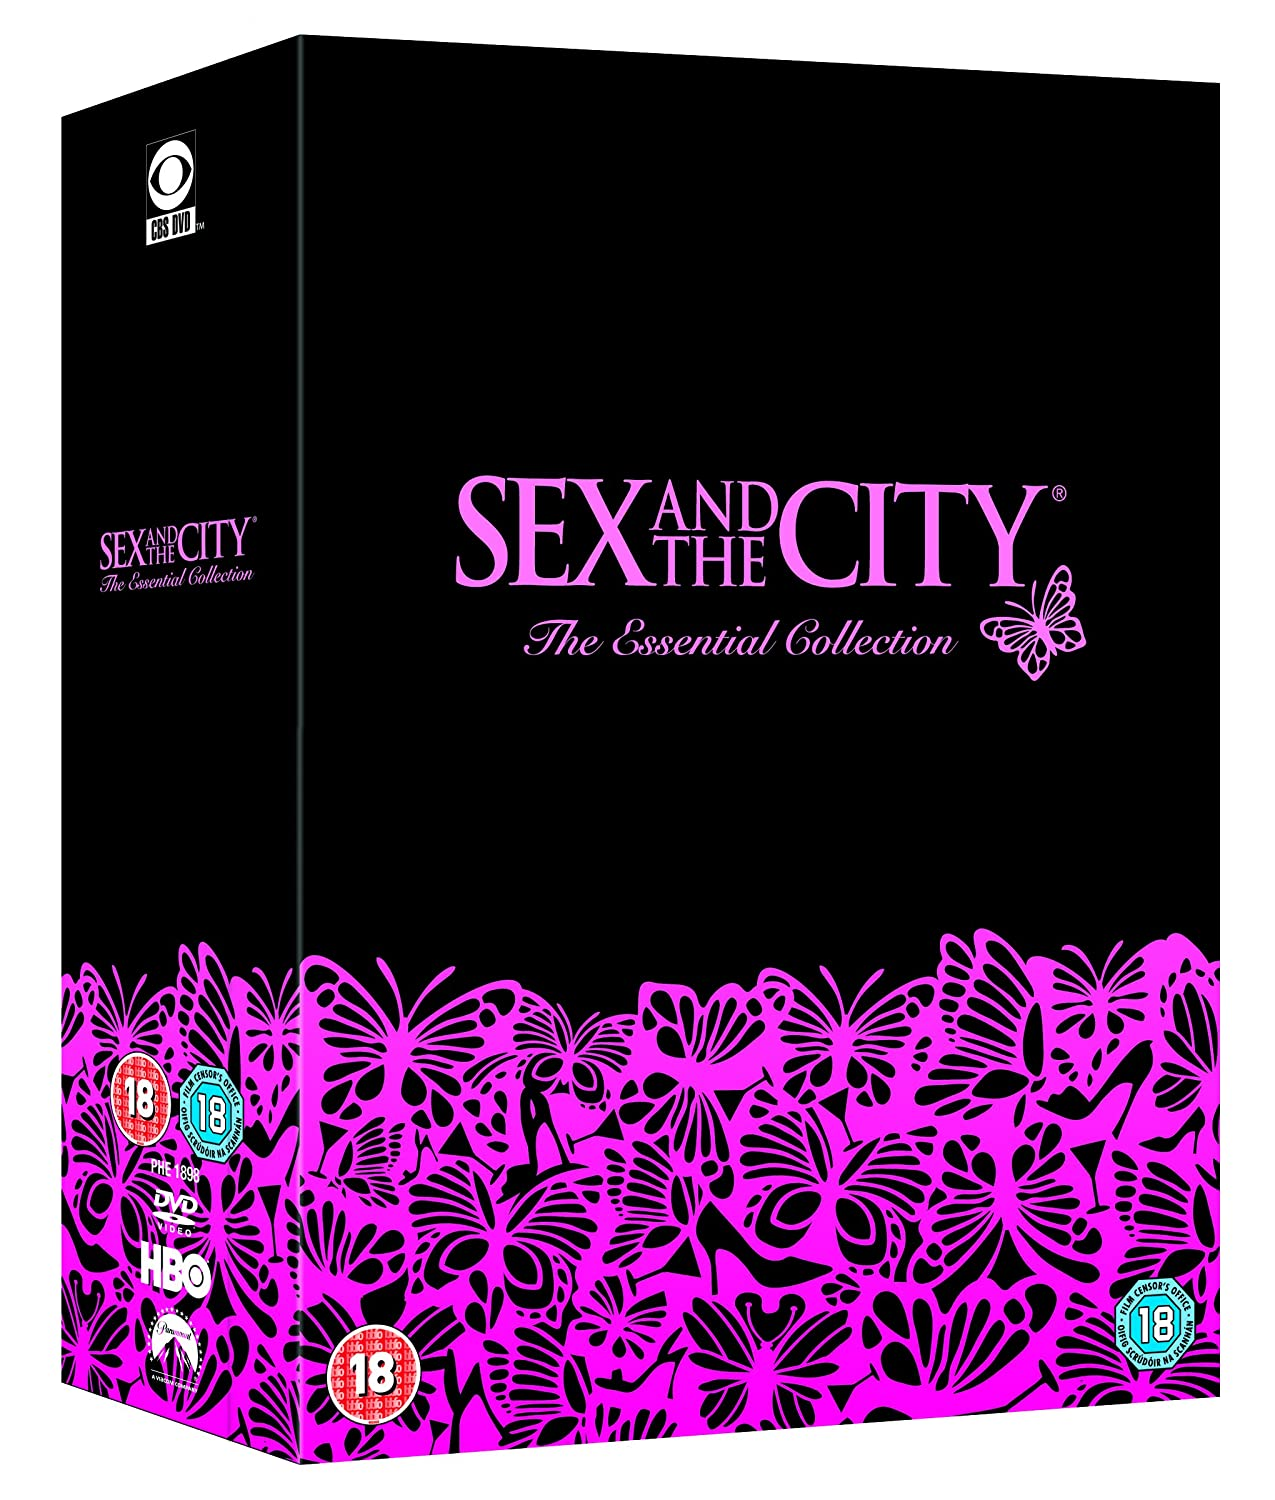 Sex and the city complete series on dvd